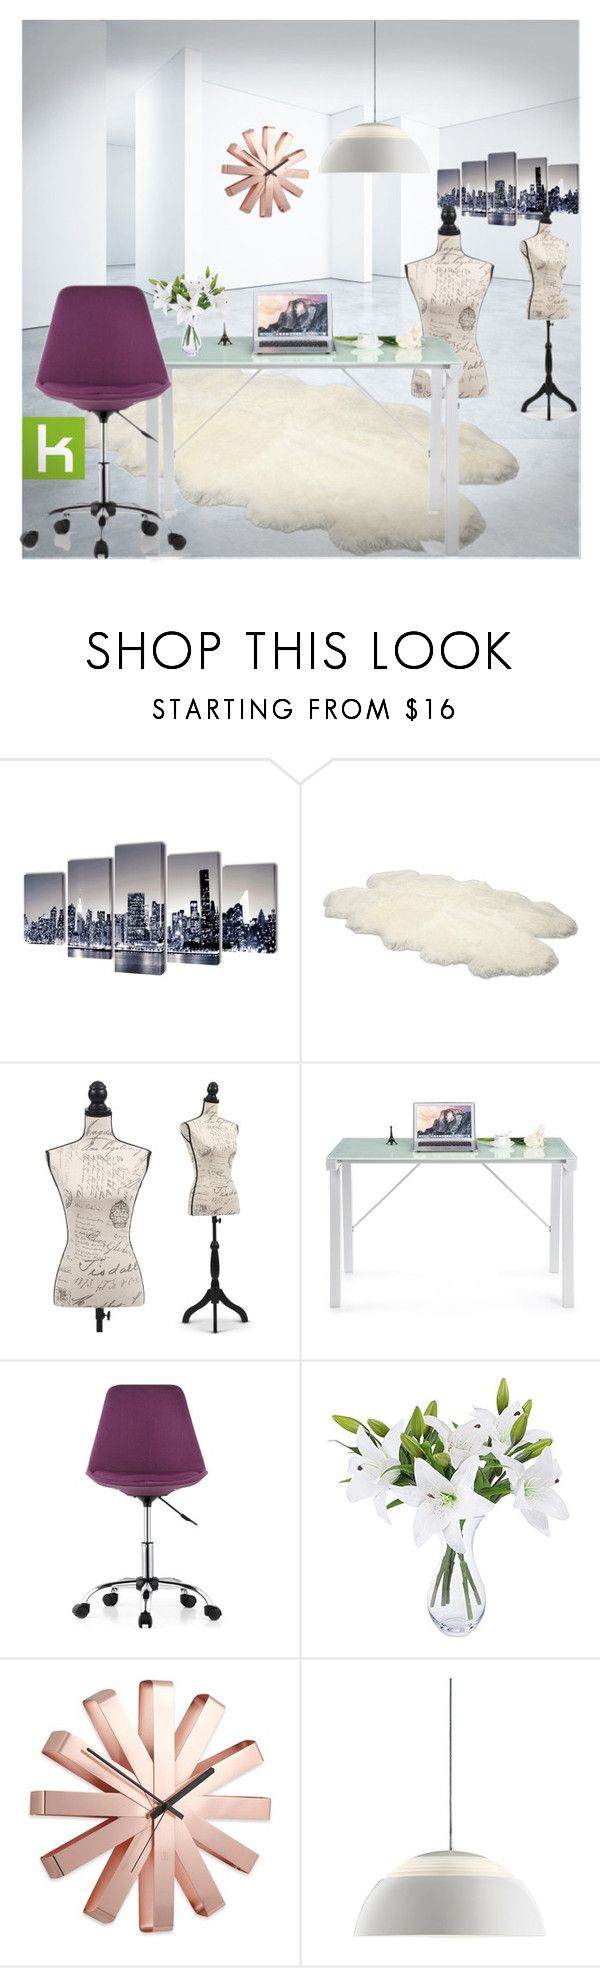 """LovDock"" by fattie-zara ❤ liked on Polyvore featuring interior, interiors, interior design, home, home decor, interior decorating, UGG Australia, Umbra, Louis Poulsen and interiordesign"